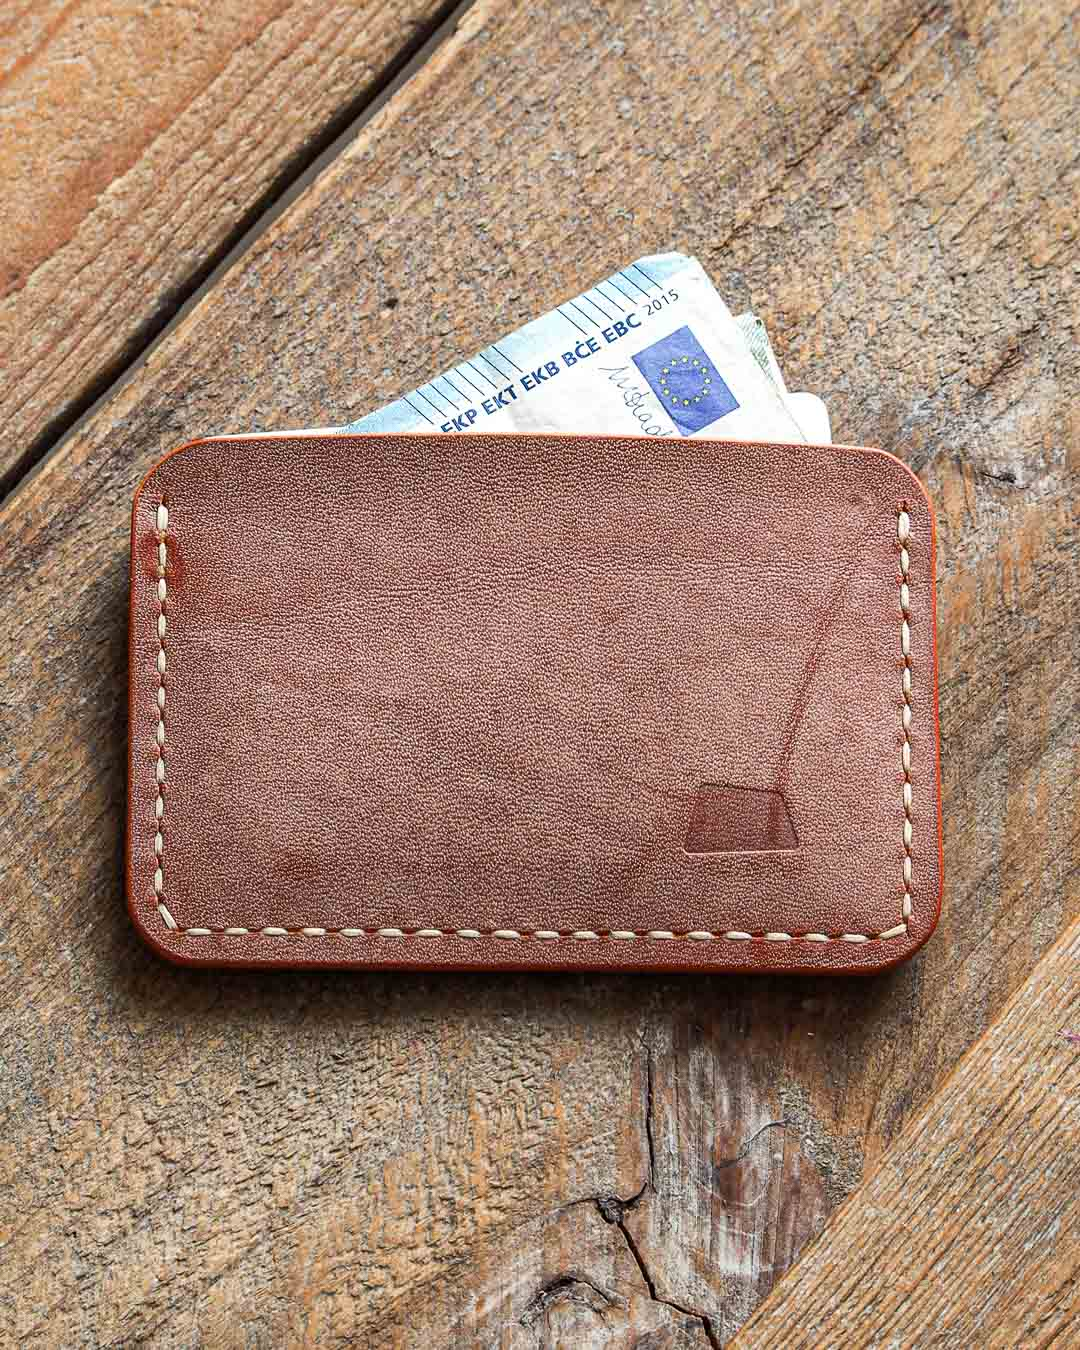 Luava handmade leather wallet handcrafted card holder cardholder made in finland proper ghost whiskey back in use